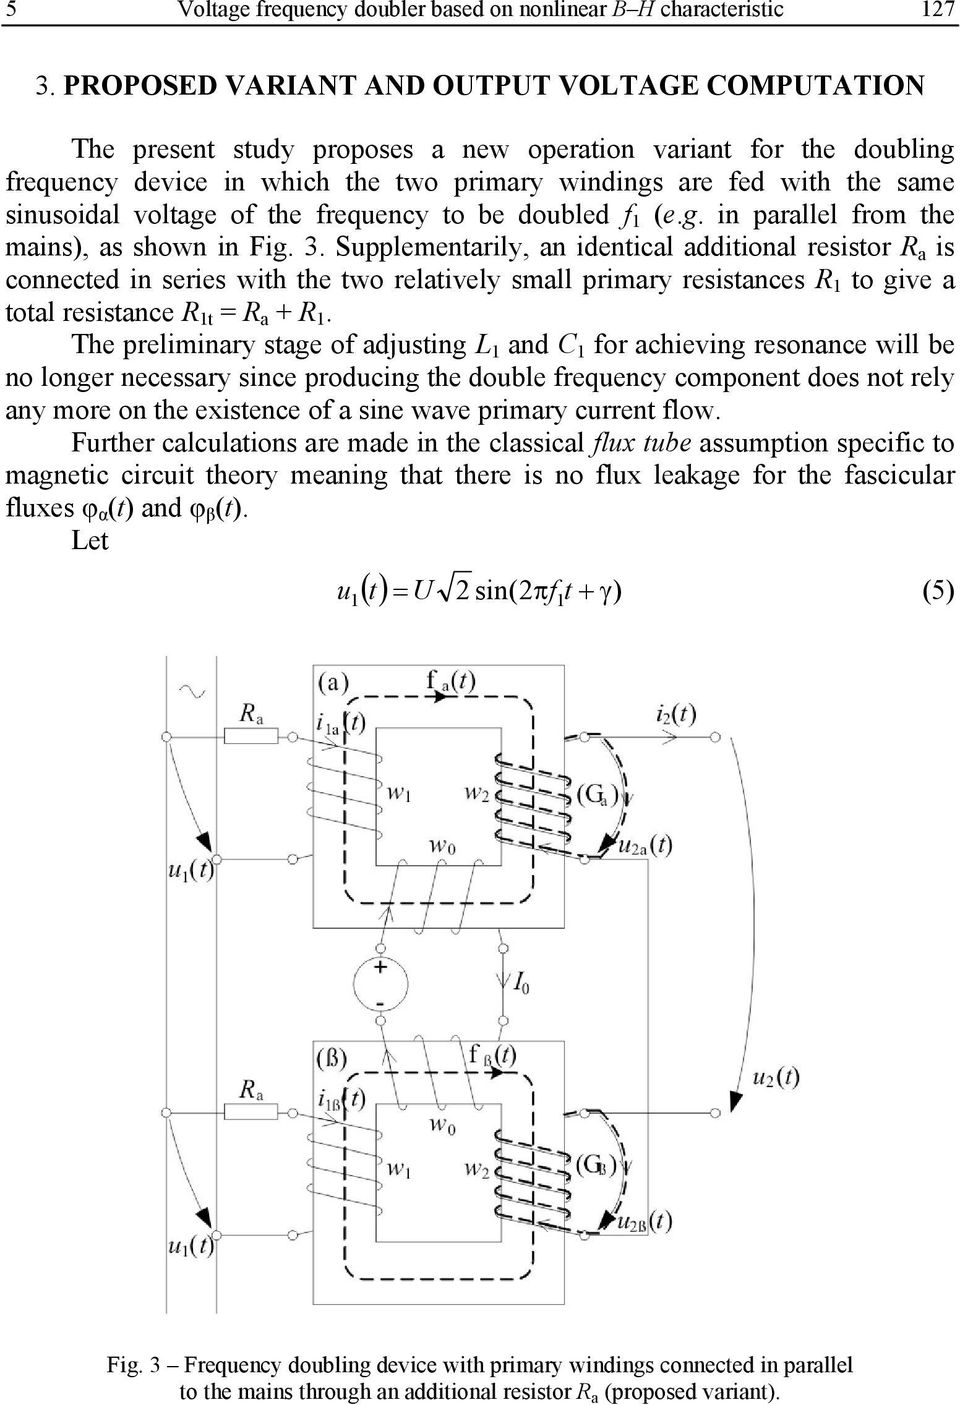 Study Of The Voltage Frequency Doubler With Nonlinear Iron Core A Effect For Electric Guitar To Be Doubled F 1 Eg In Parallel From Mains